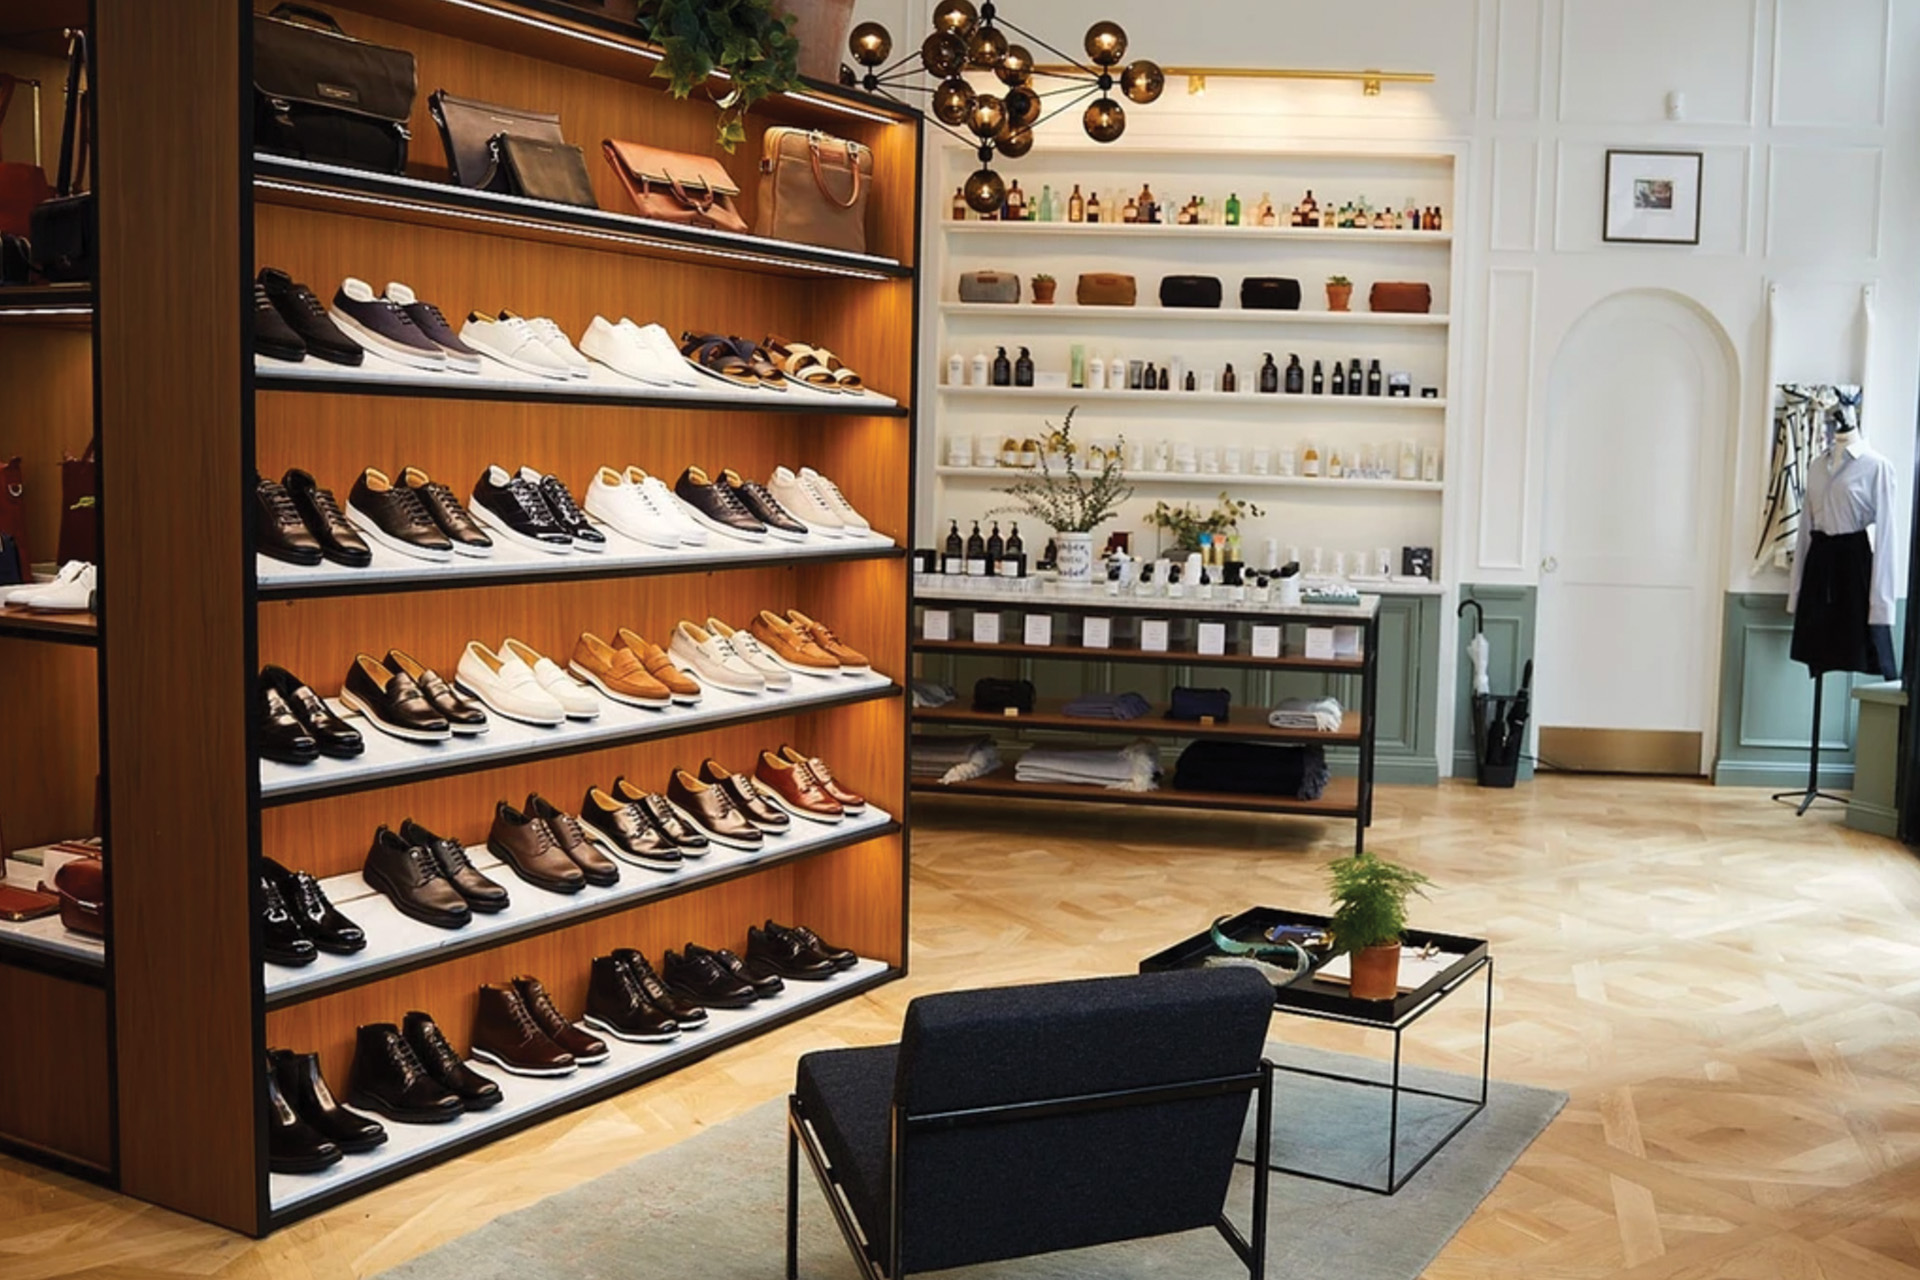 Retail store with shoes and leather goods display and table and wall with various skin care products.